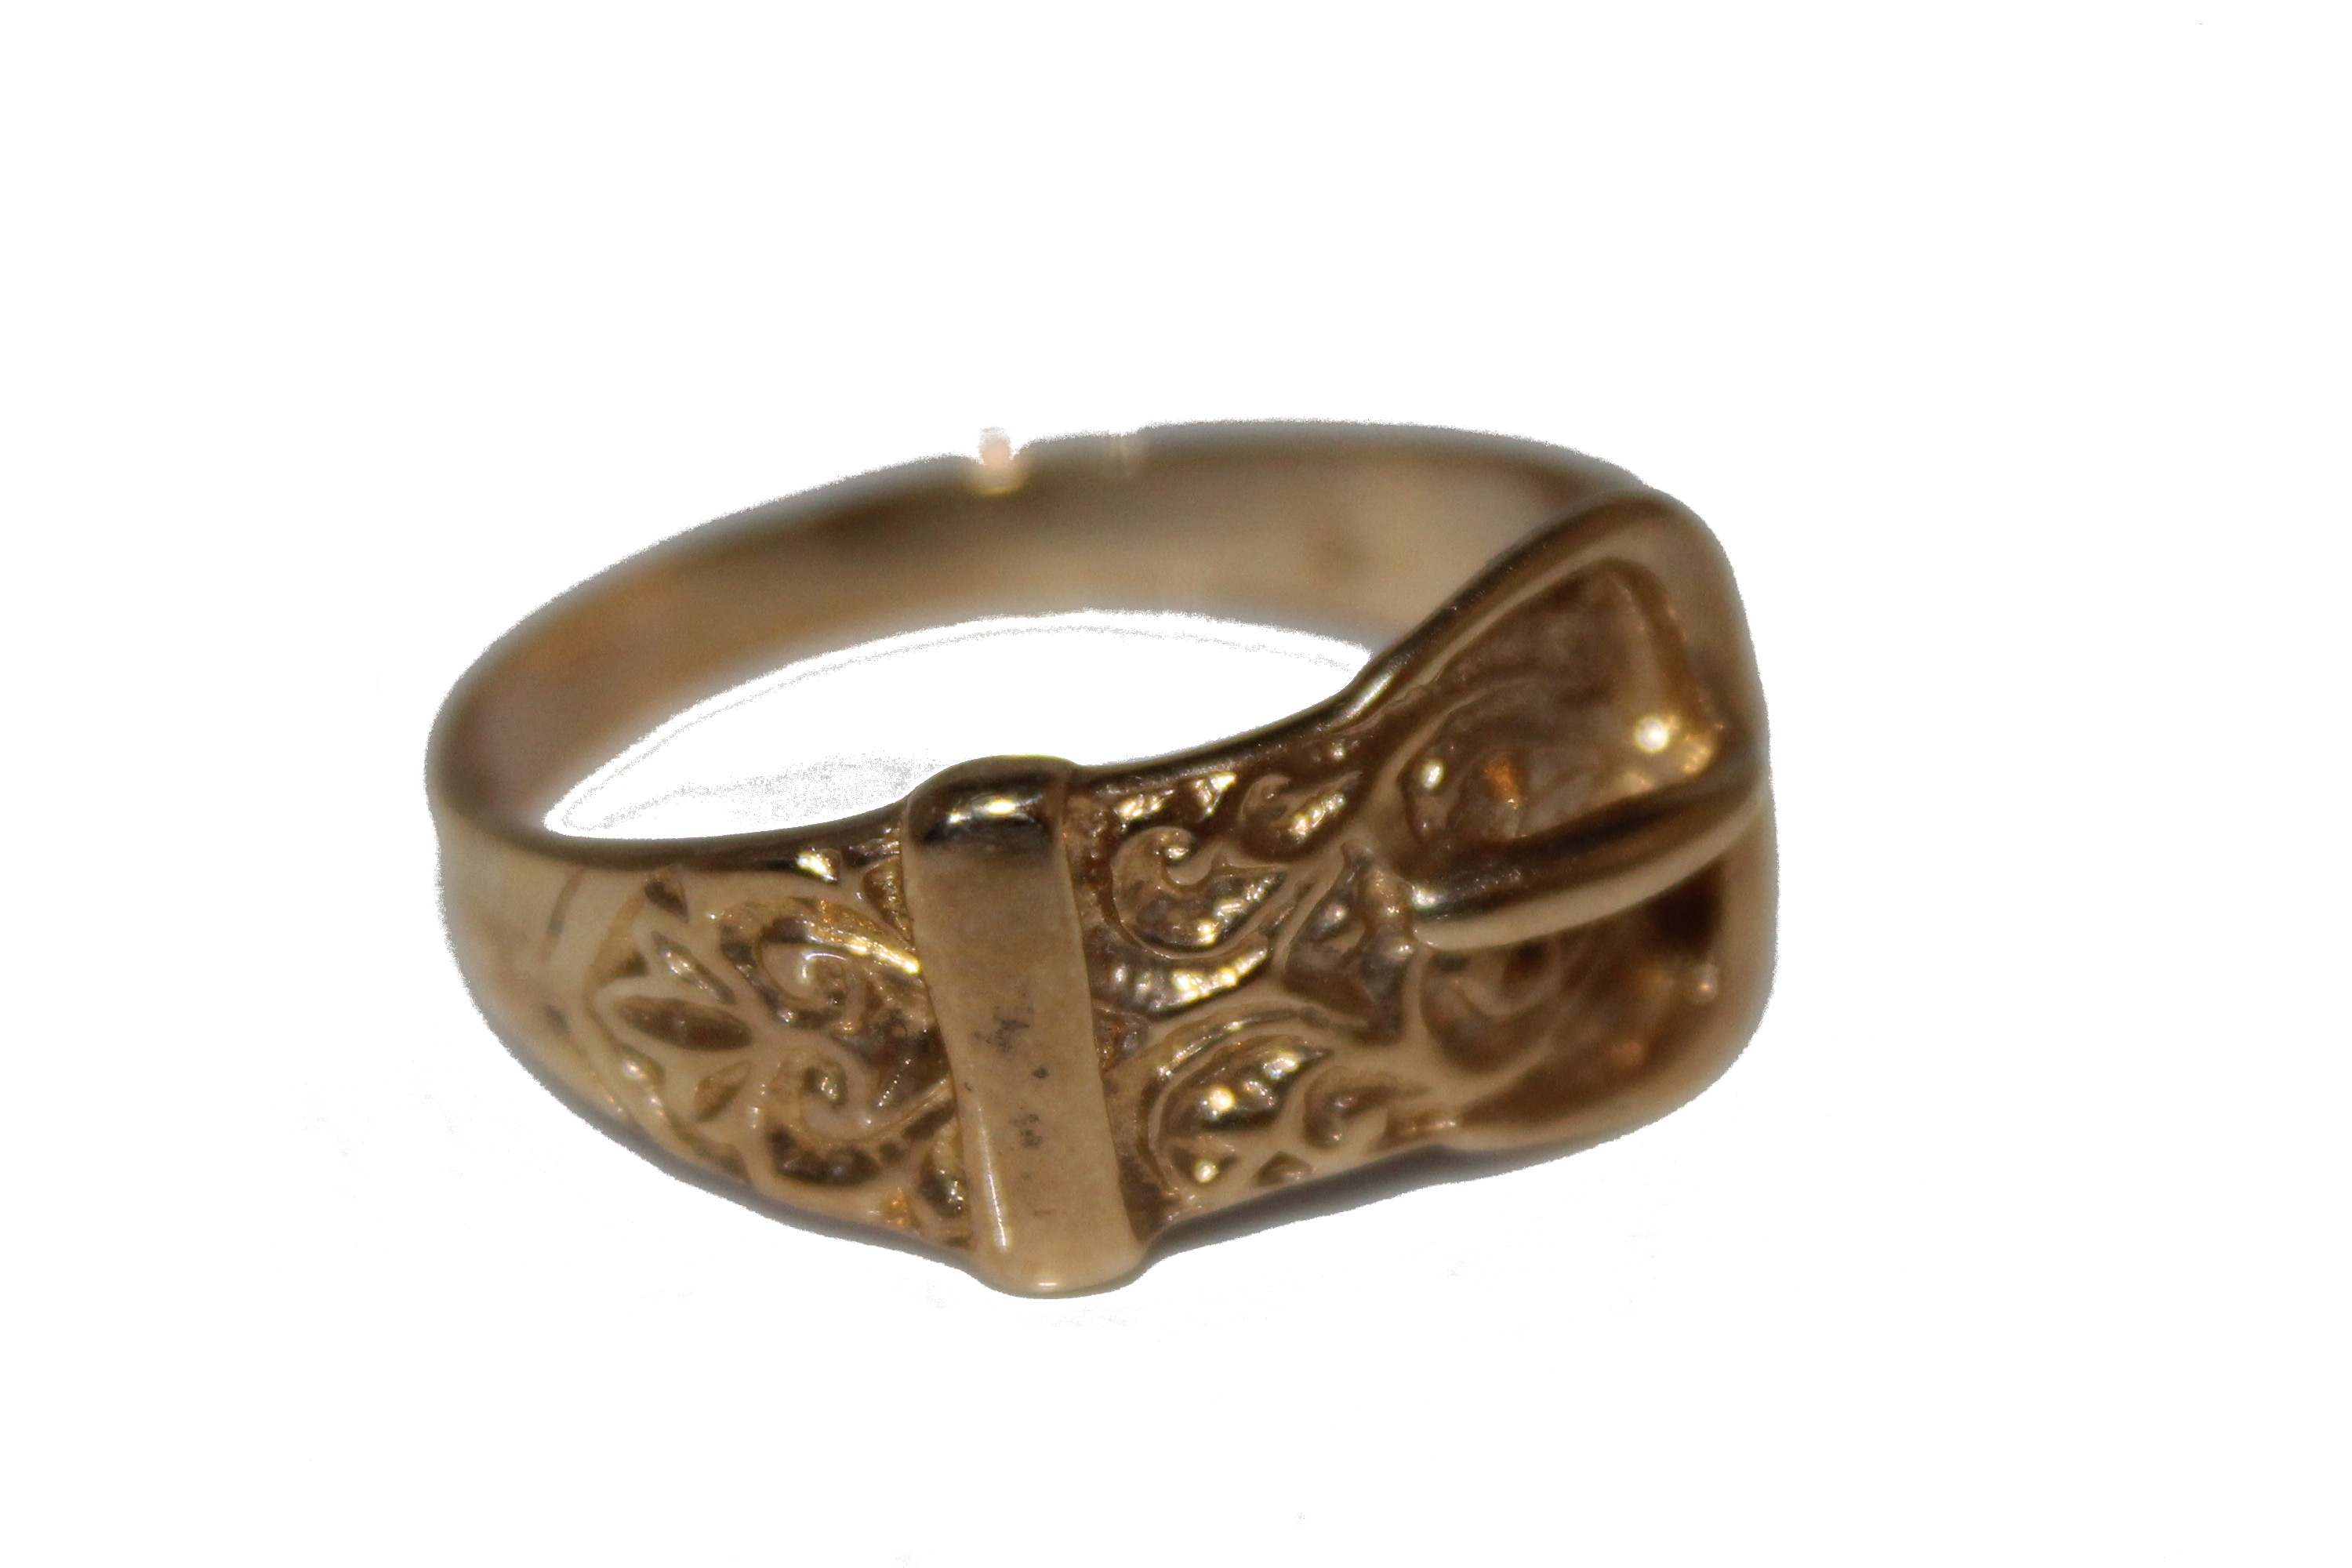 9ct Gents Ring buckle ring £155 3.9